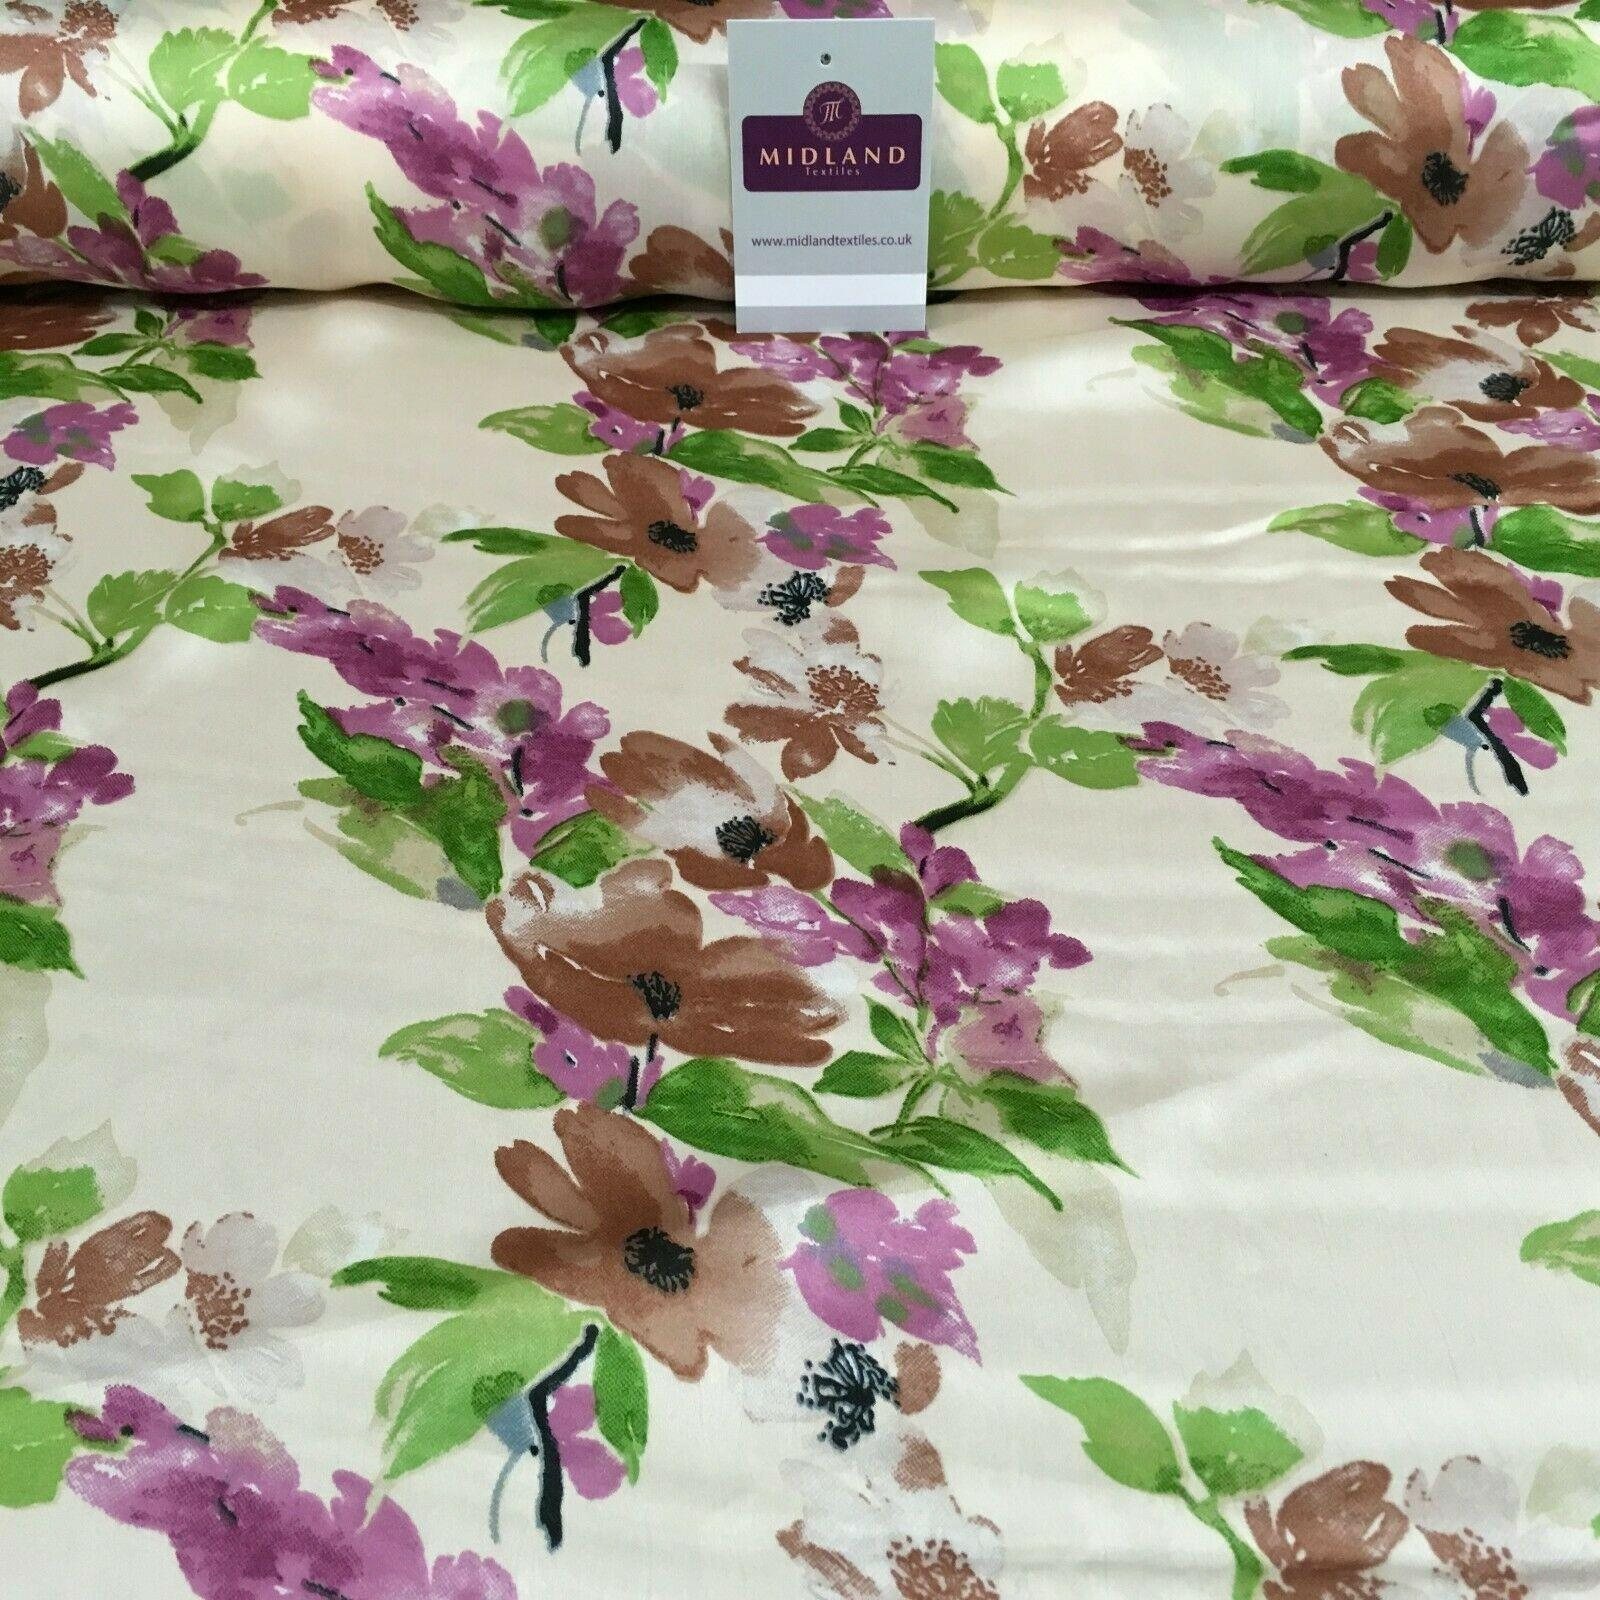 Pastel Floral Silky Satin printed Dress fabric 147 cm Wide MR1132 Mtex